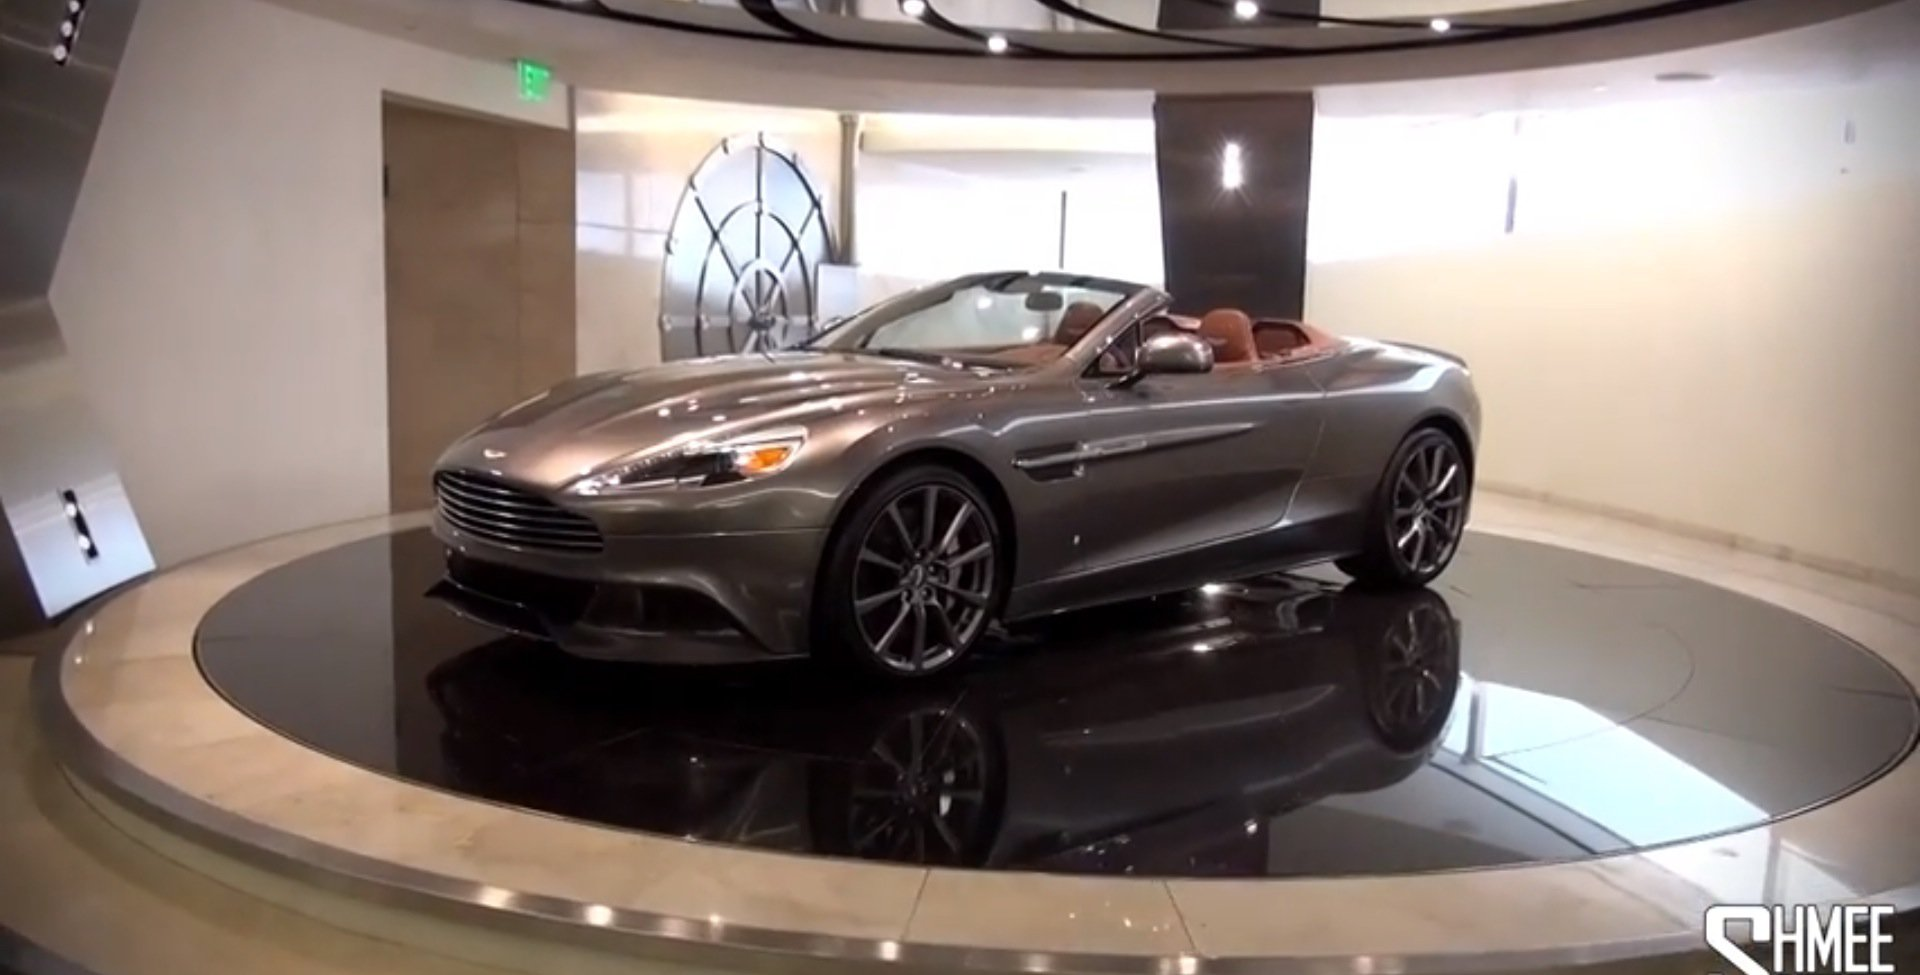 This Aston Martin Dealership Vault Is Very James Bond - Aston martin dealerships